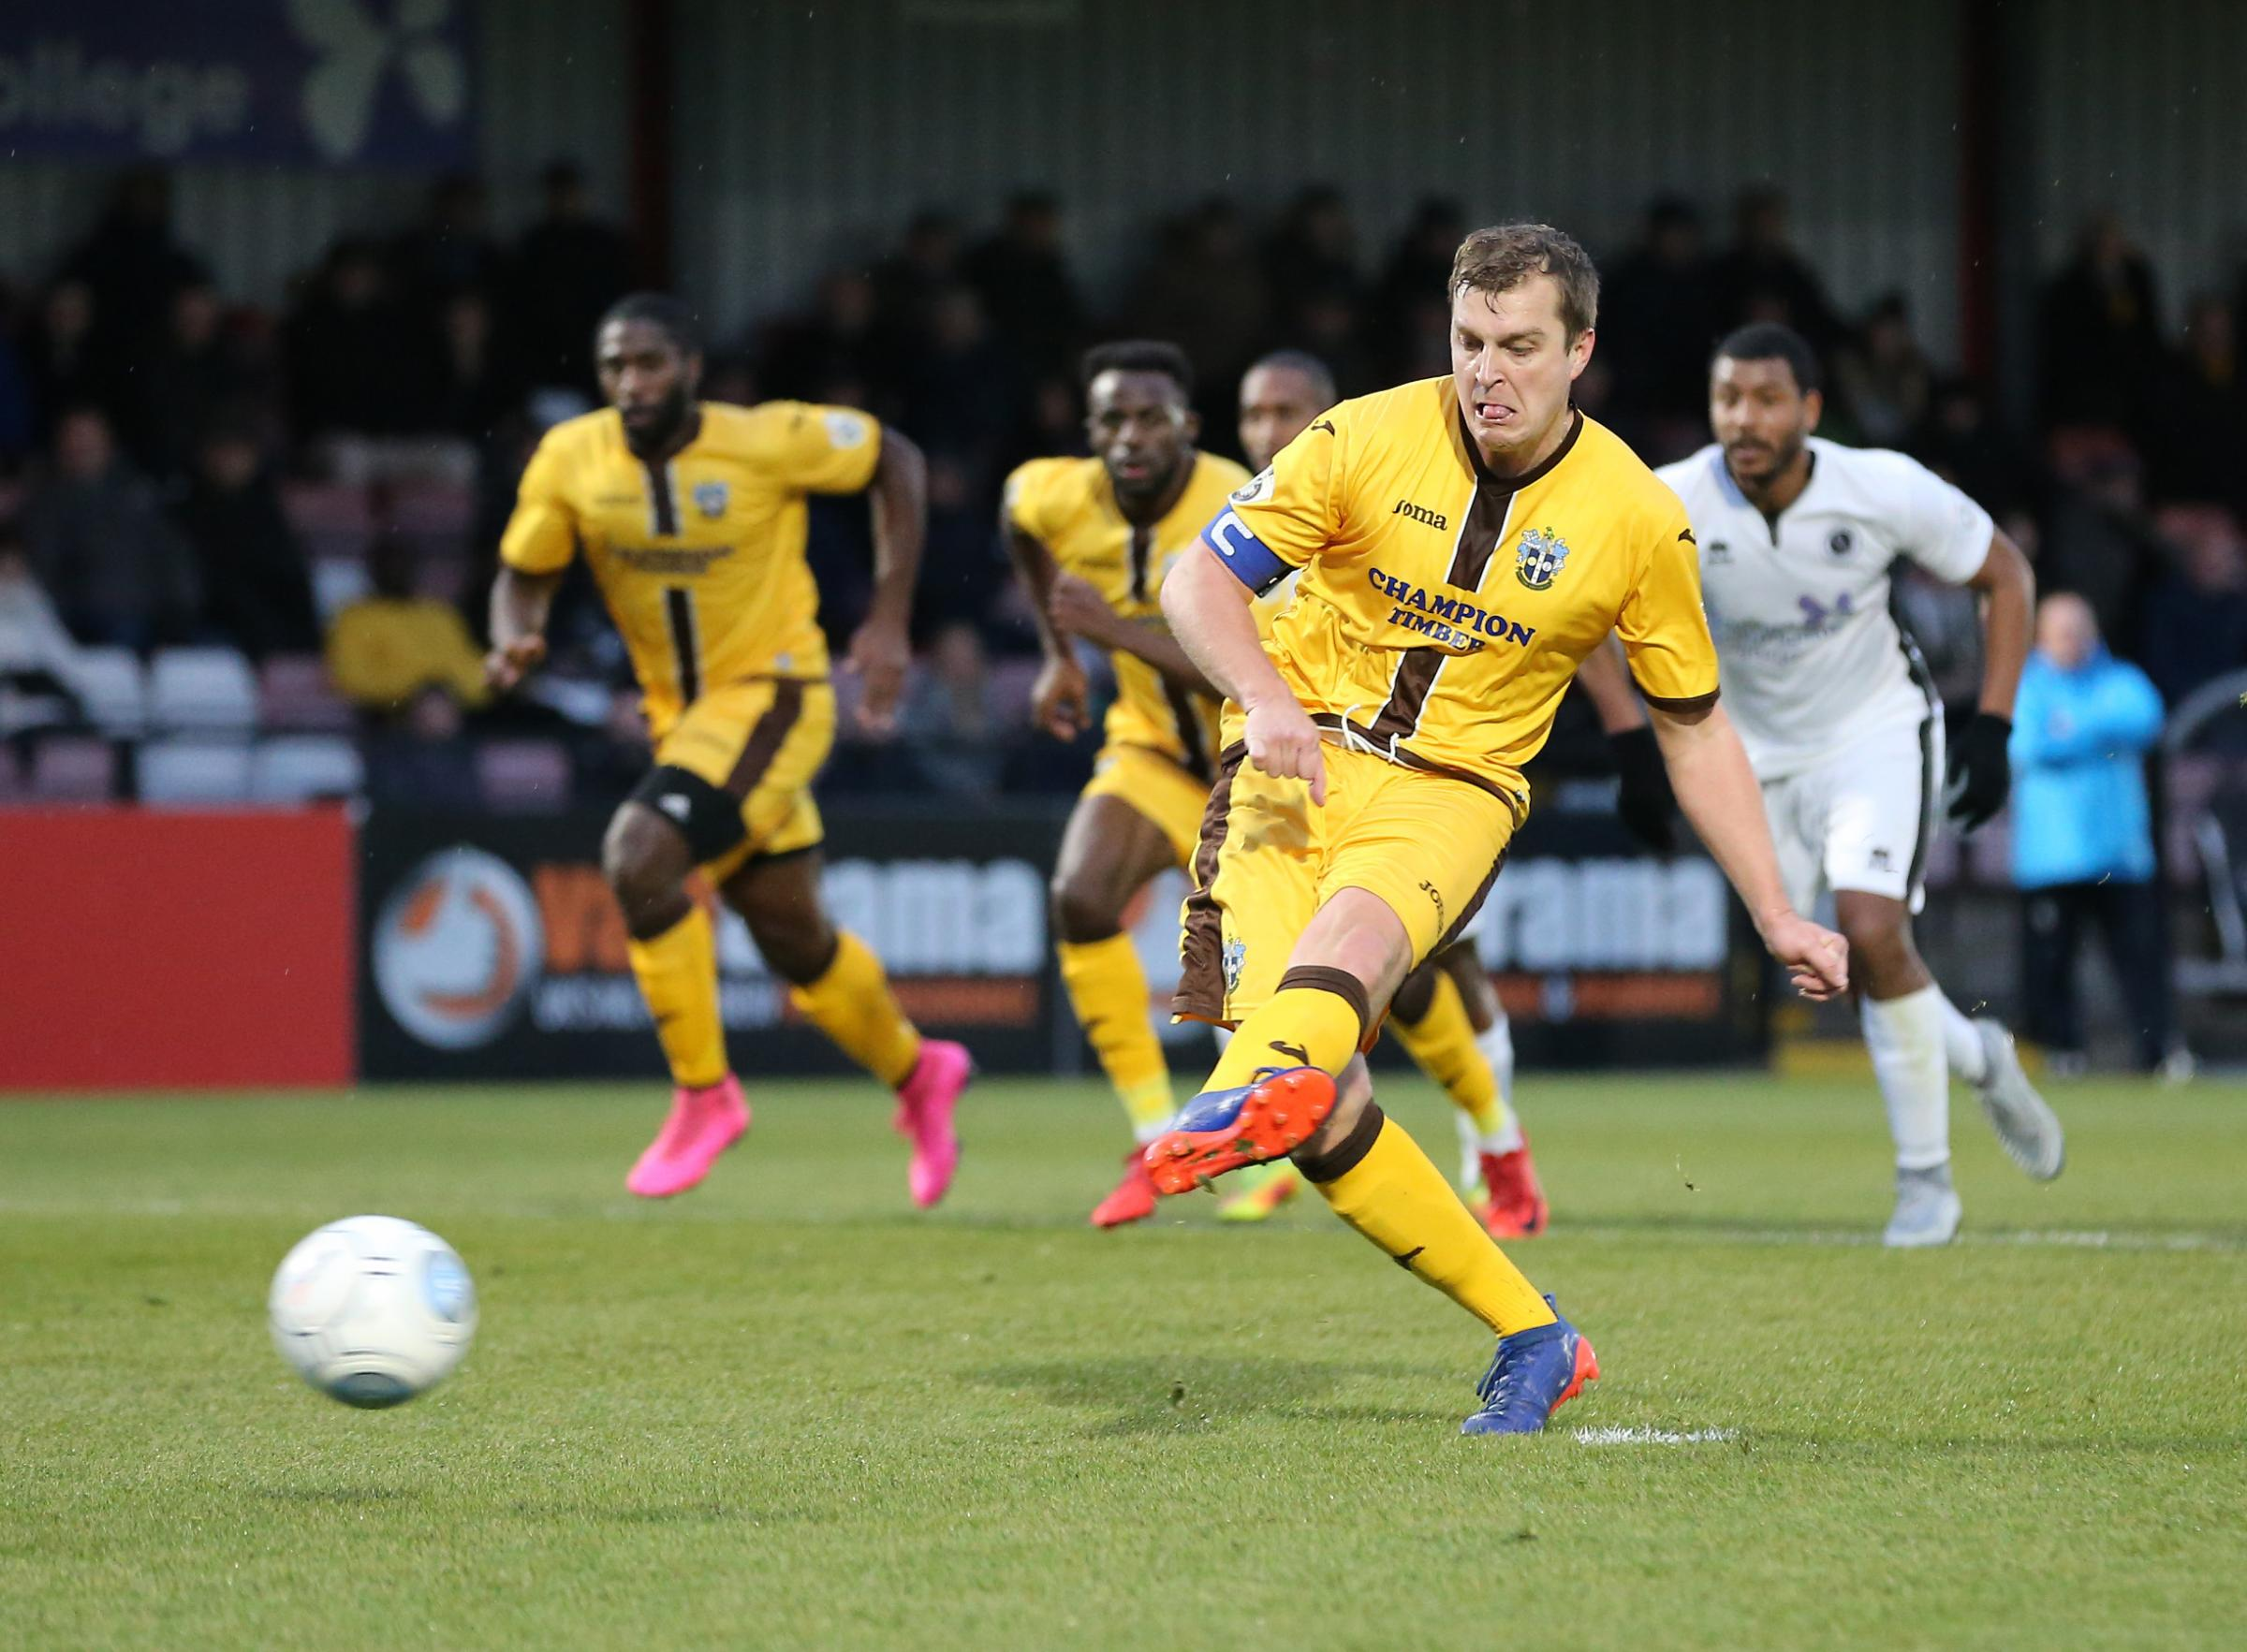 Captain Jamie Collins scored his second penalty of the season as Sutton United beat Eastleigh on Tuesday night. Picture: Paul Loughlin